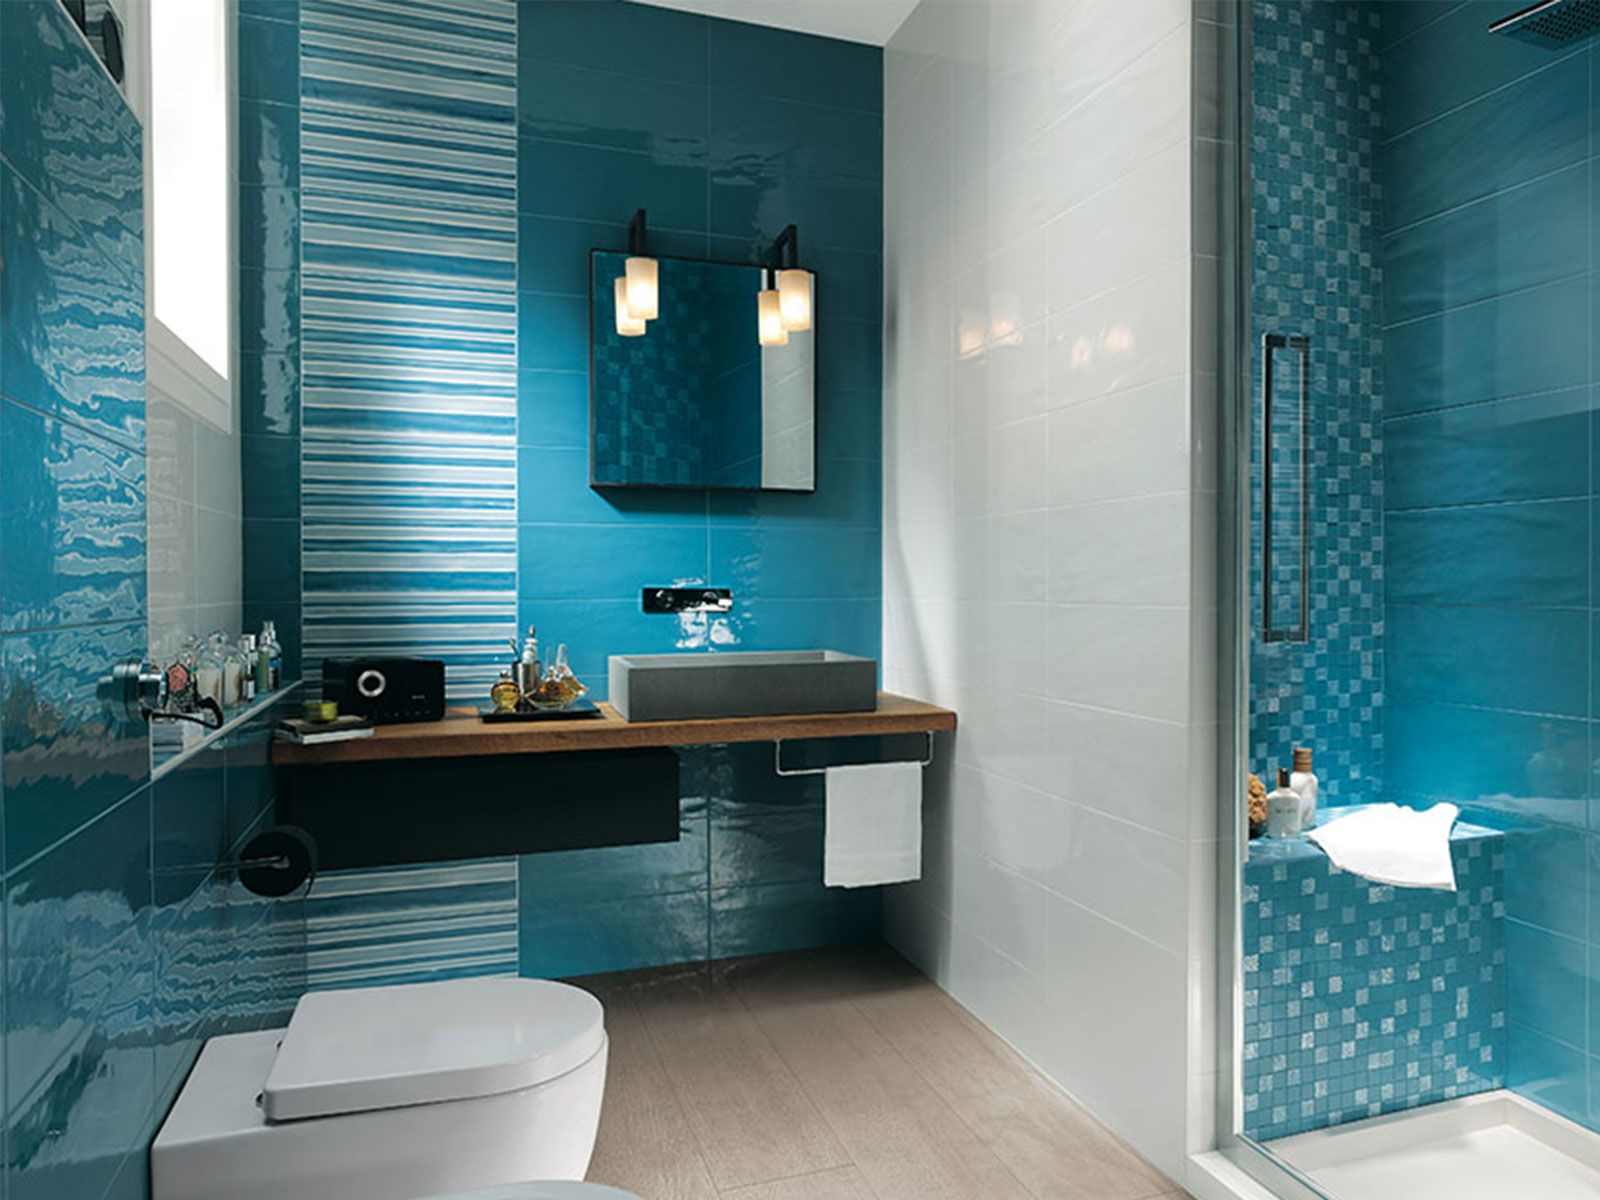 Aqua blue bathroom designs kuyaroom com